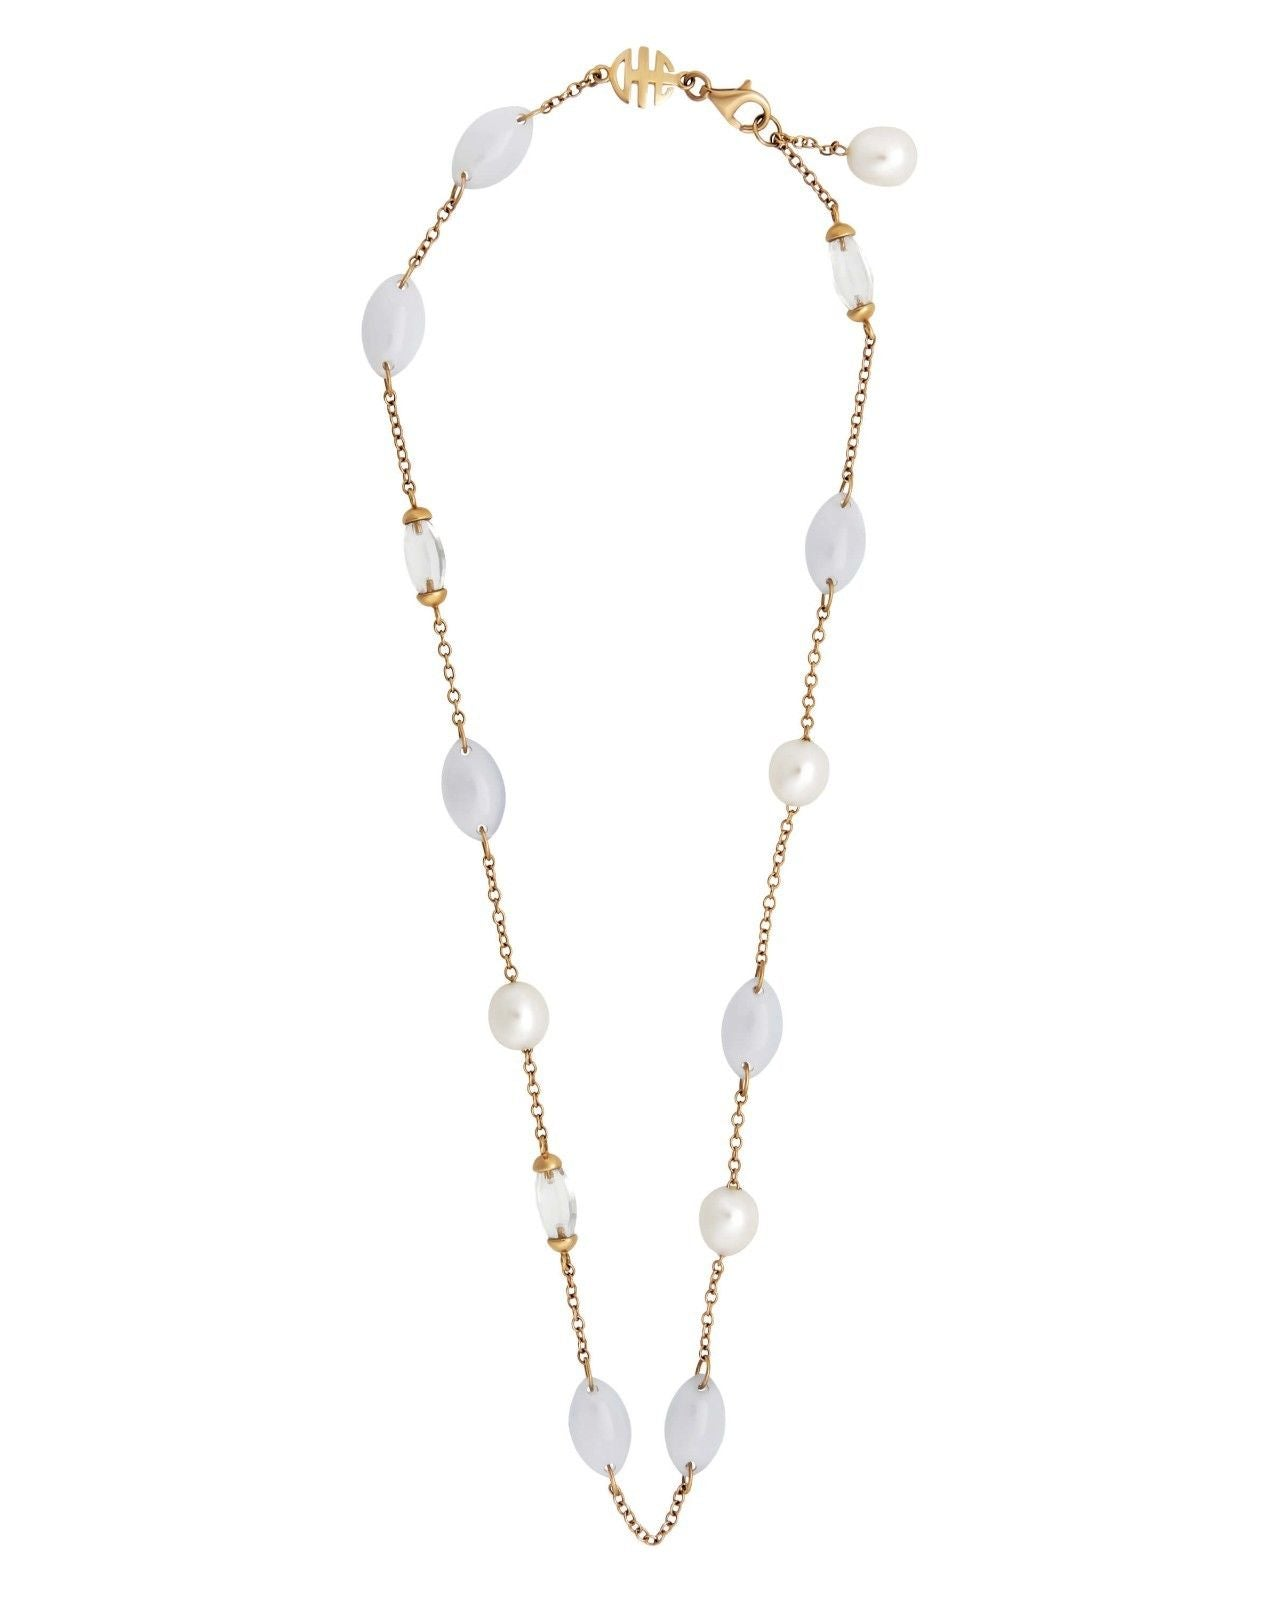 Mimi Milano Necklace In 18K Rose Gold, Chalcedony White Pearls c153r120j